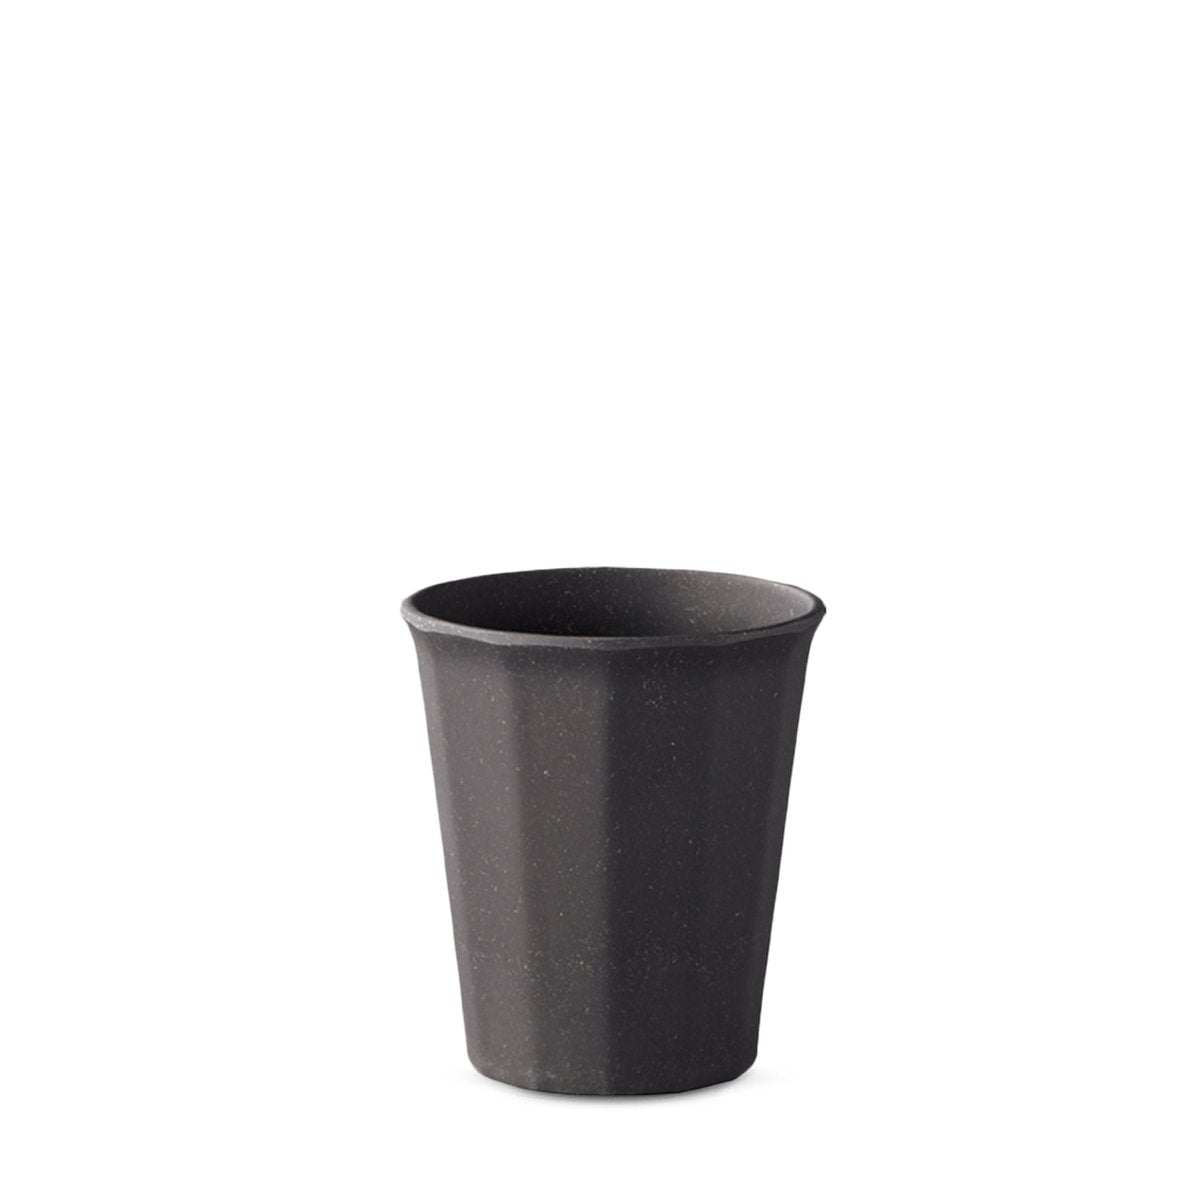 ALFRESCO TUMBLER- other colors available